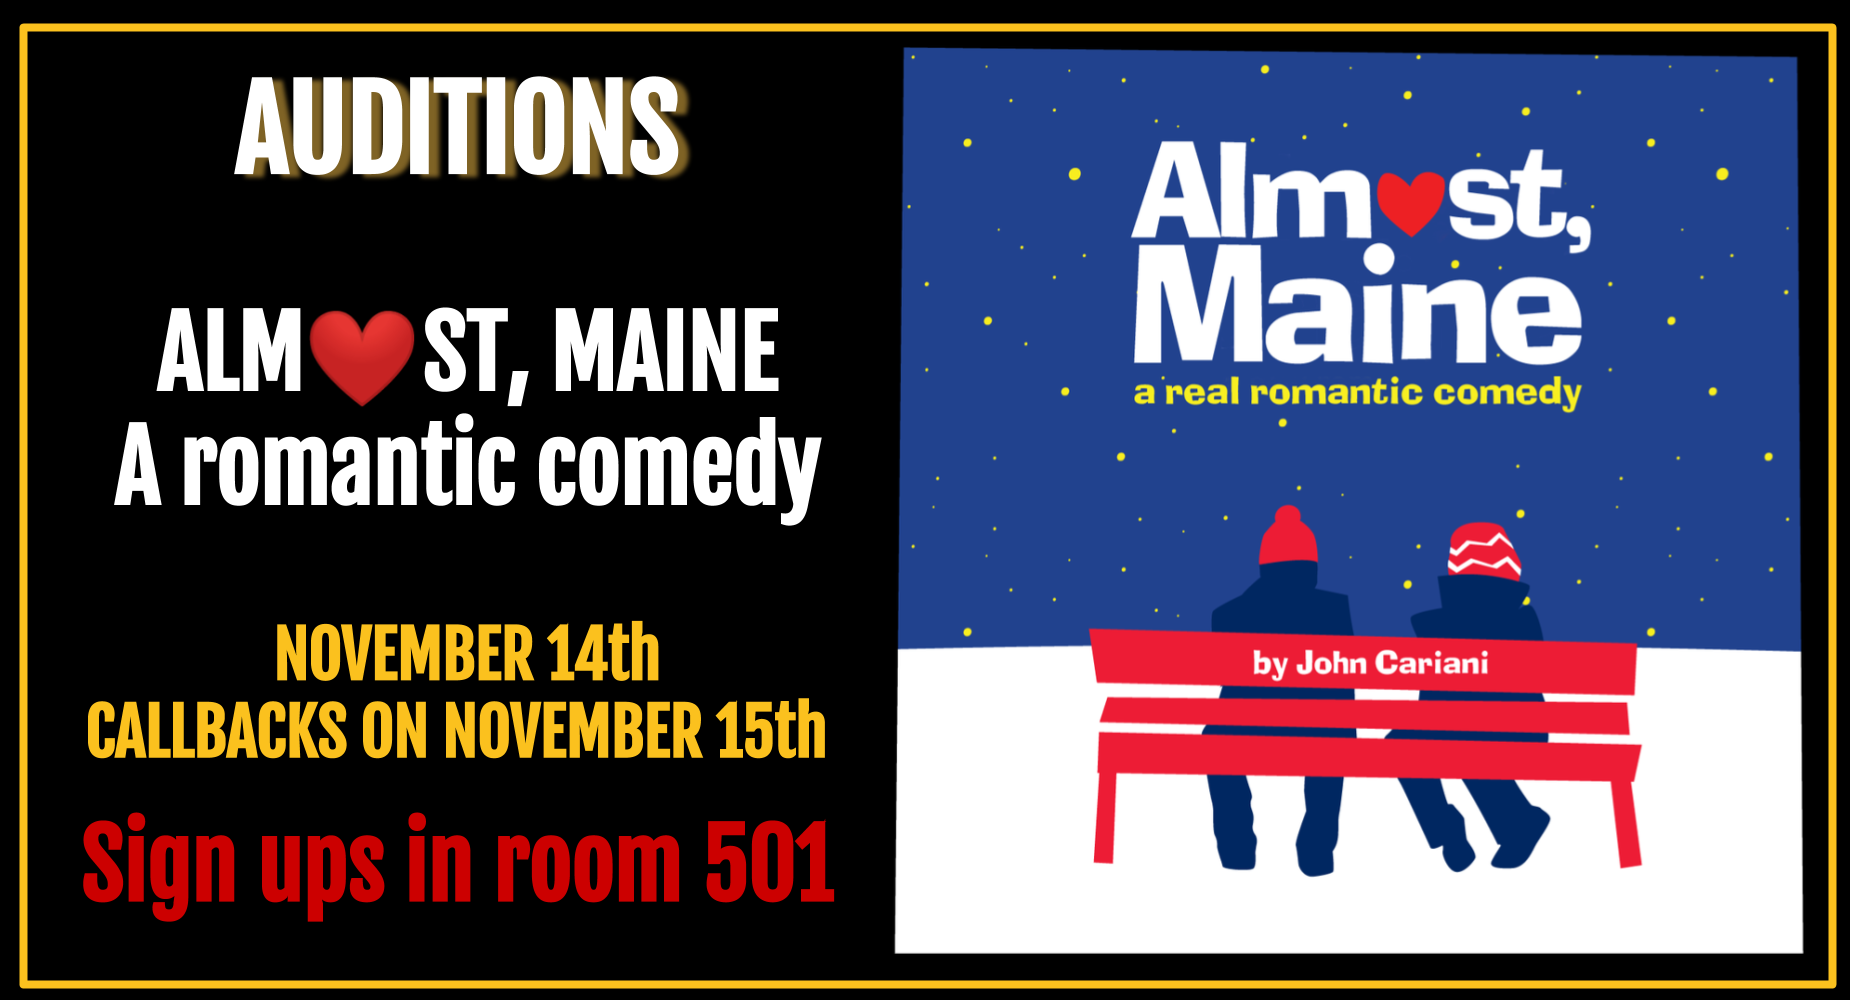 Almost Maine Auditions 11/14